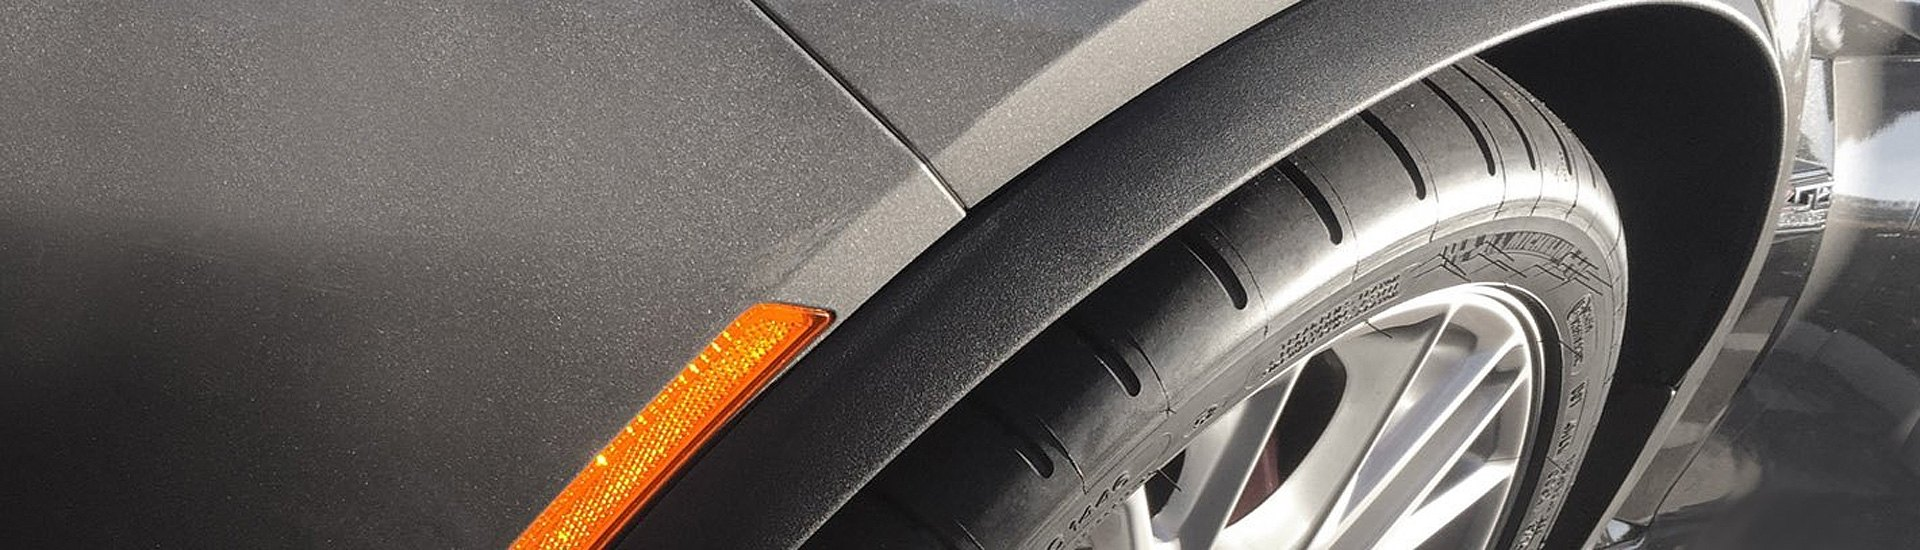 Replacement Fender Moldings & Trim | The Finishing Touch When Replacing a Fender